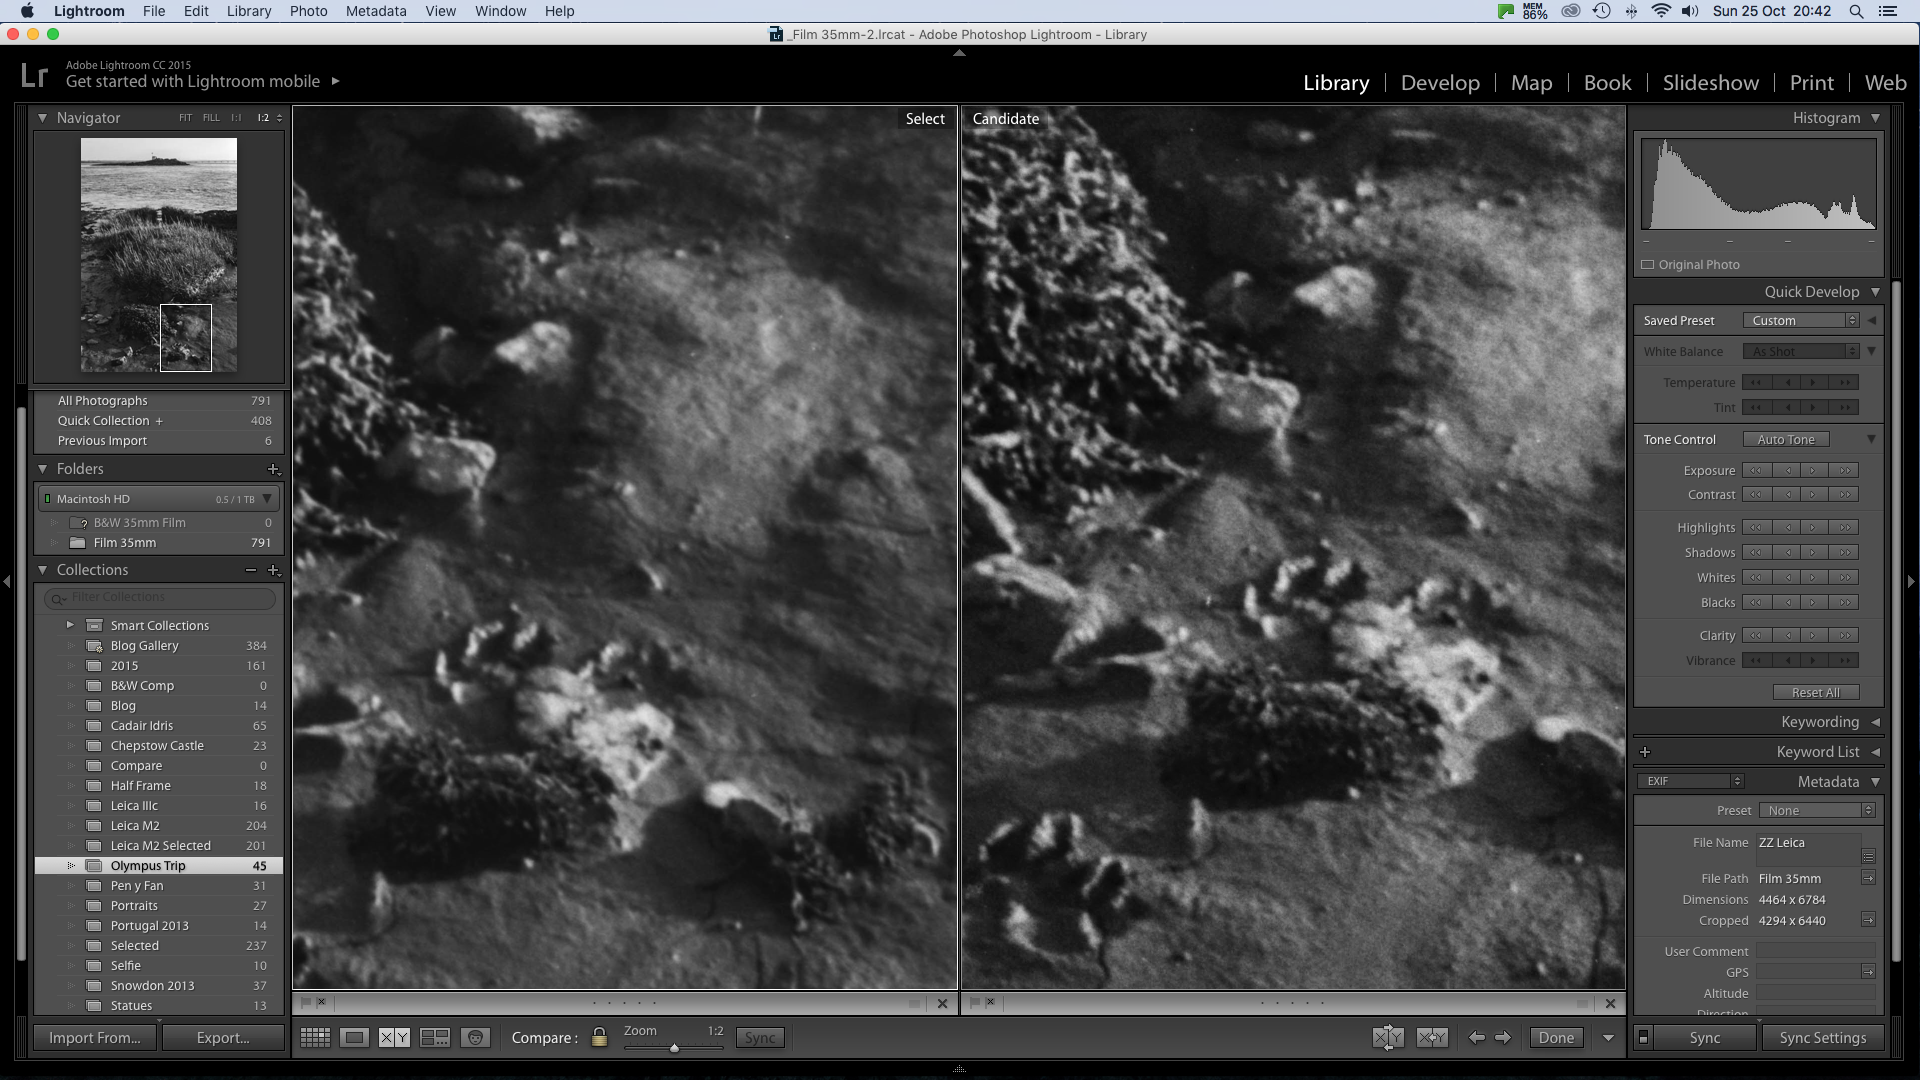 It should be obvious which one is Pan F Plus!